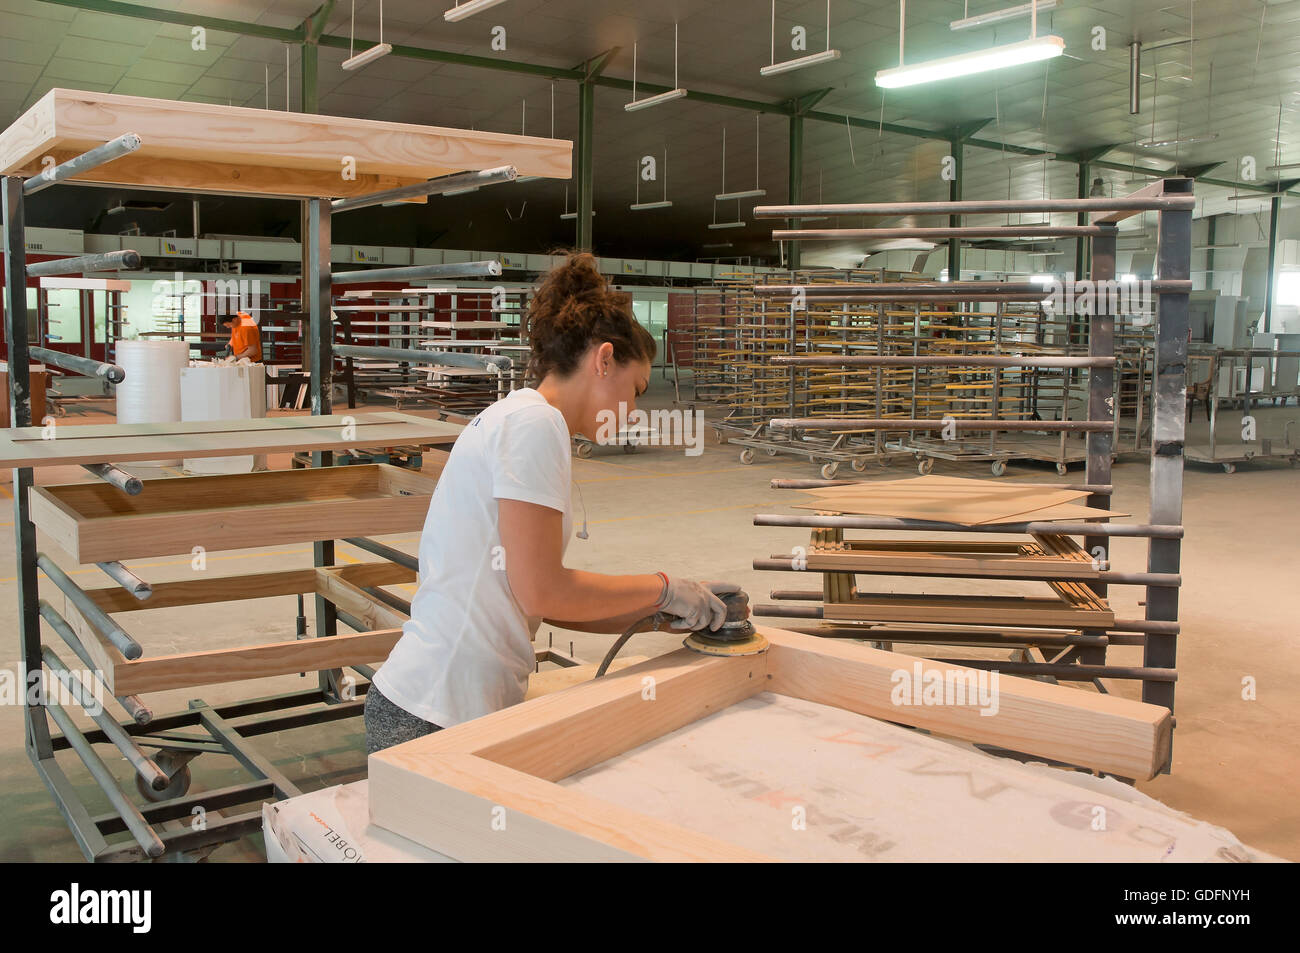 Furniture Factory Lucena Cordoba Province Region Of Andalusia